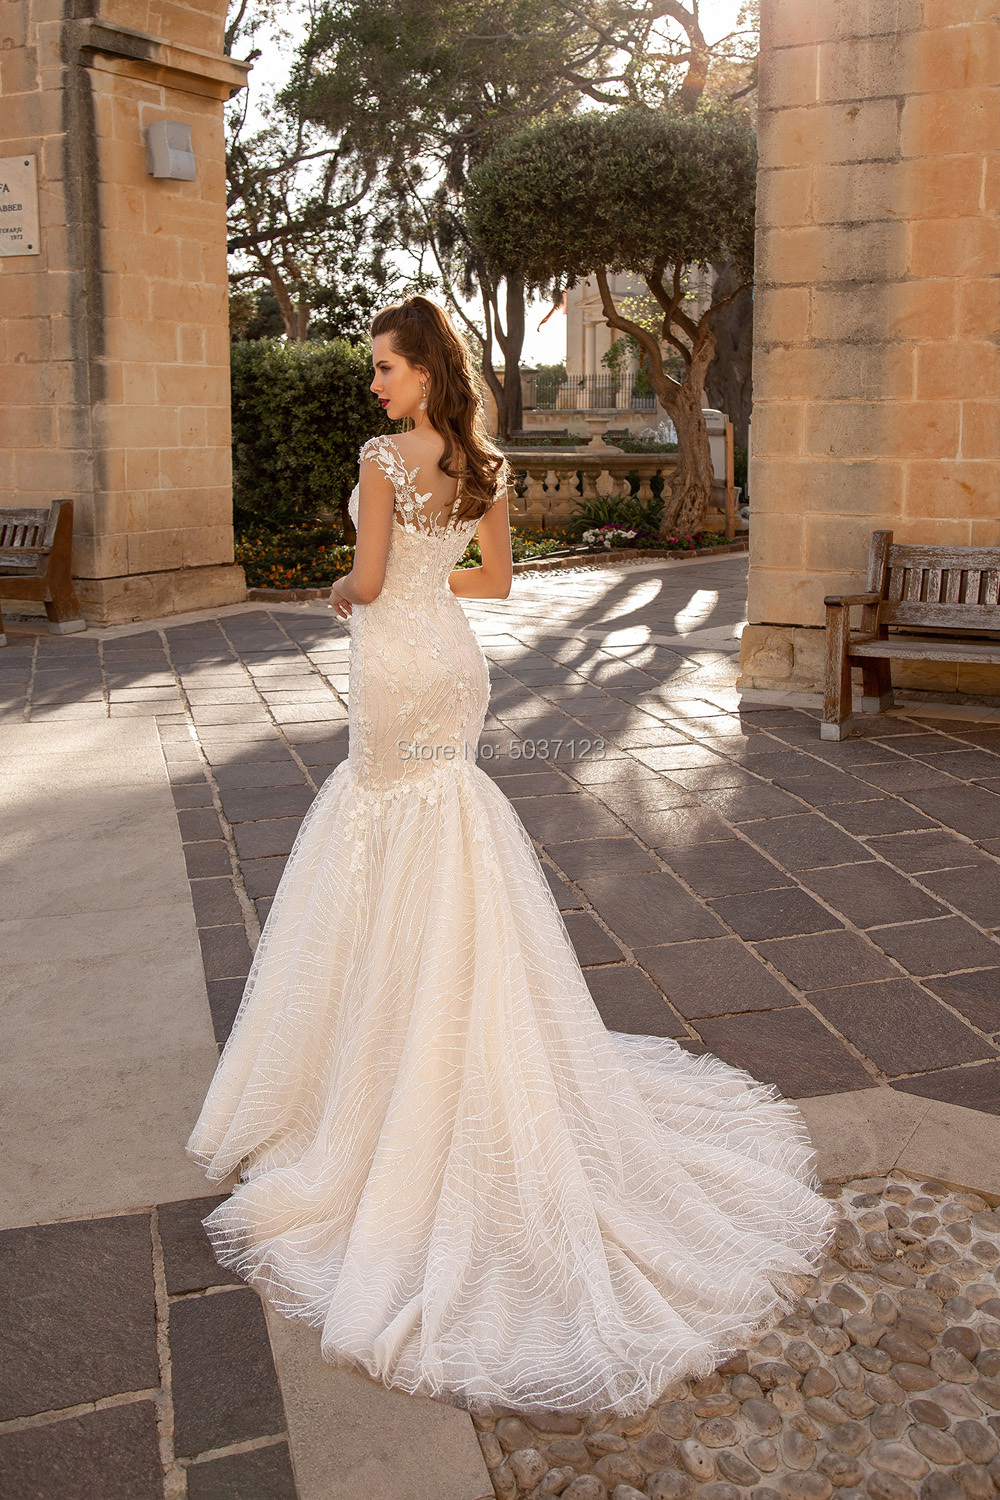 Image 3 - Mermaid Wedding Dresses Sweetheart Lace Appliques Bridal Gown Button Illusion Sleeveless Vestido De Noiva Plus Size Court Train-in Wedding Dresses from Weddings & Events